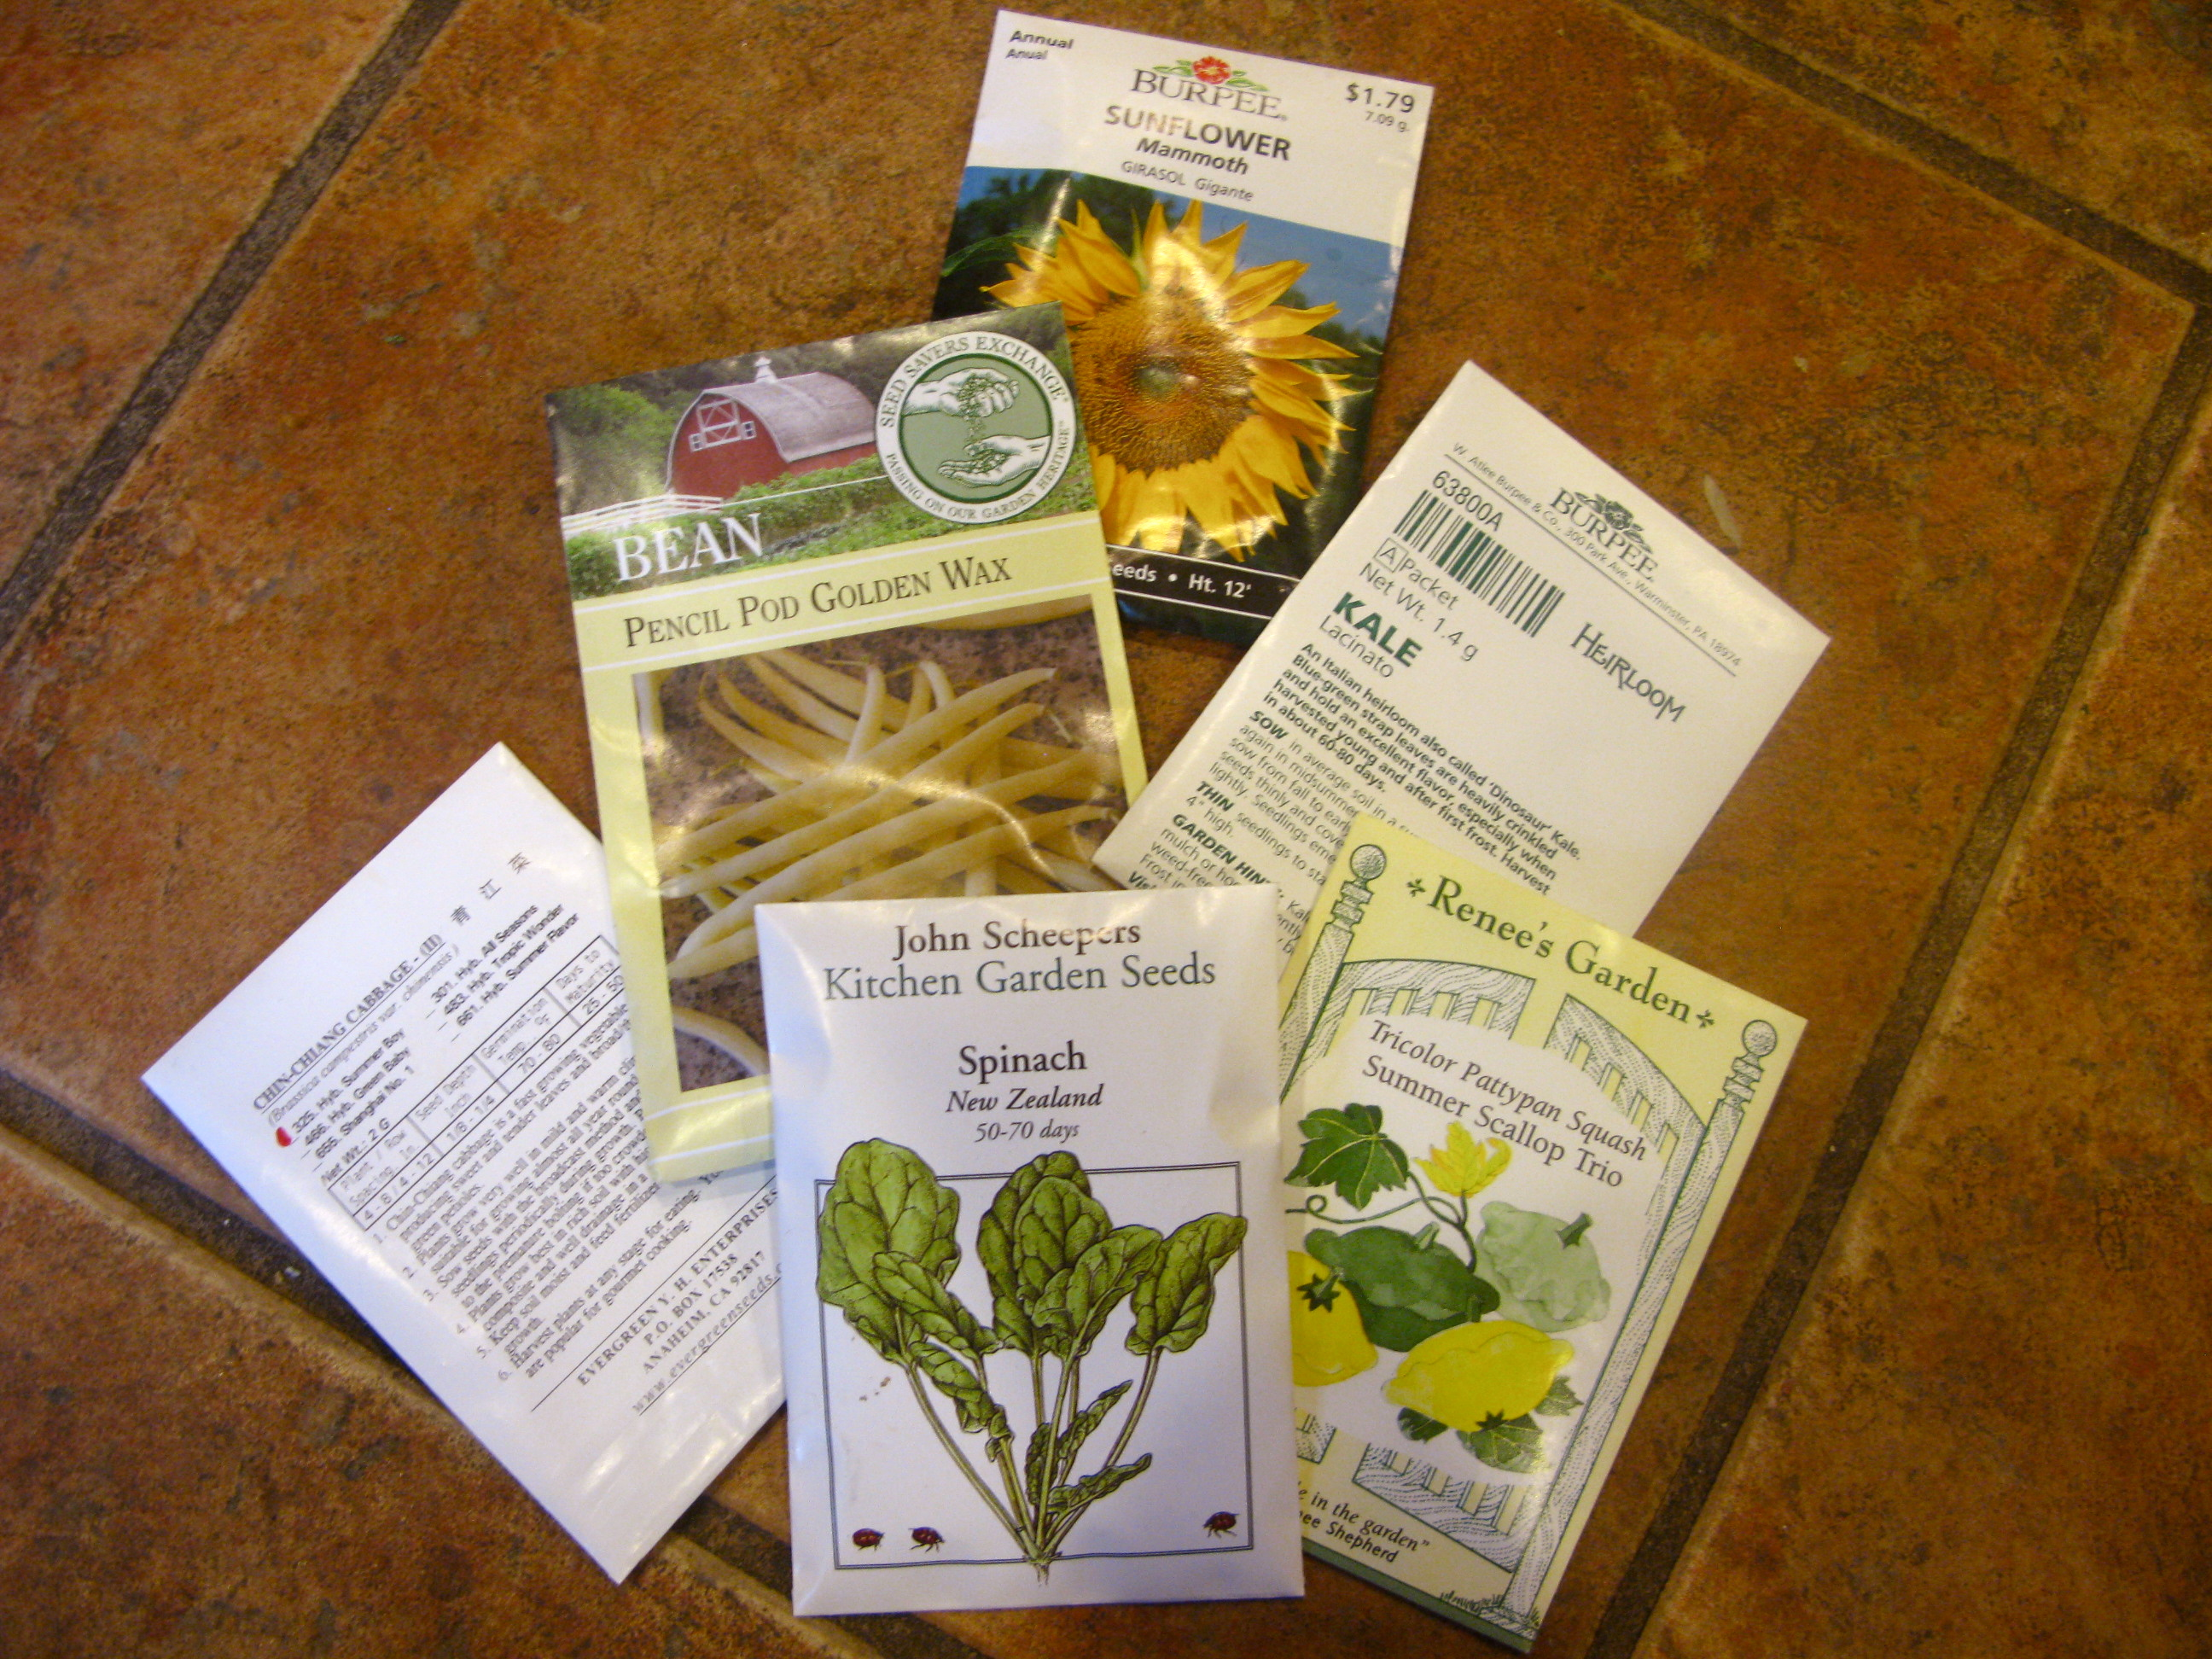 Scheepers Kitchen Garden Seeds Tigers Strawberries A How To Read A Seed Packet